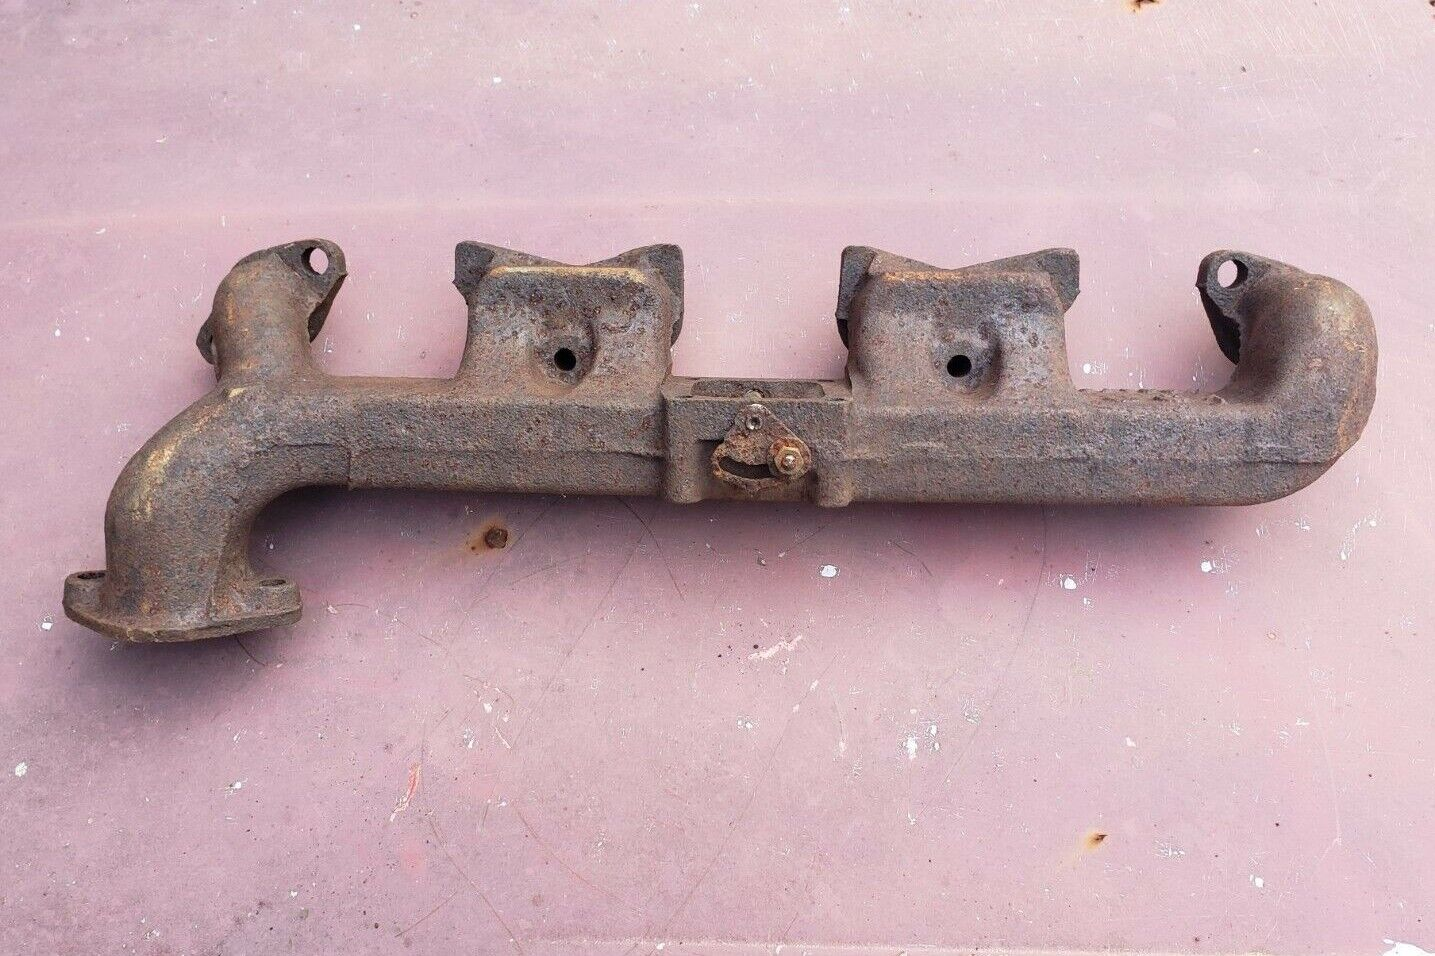 34 35 36 37 38 39 40 41 42 46 47 48 NOS PLYMOUTH EXHAUST MANIFOLD 201 218 230